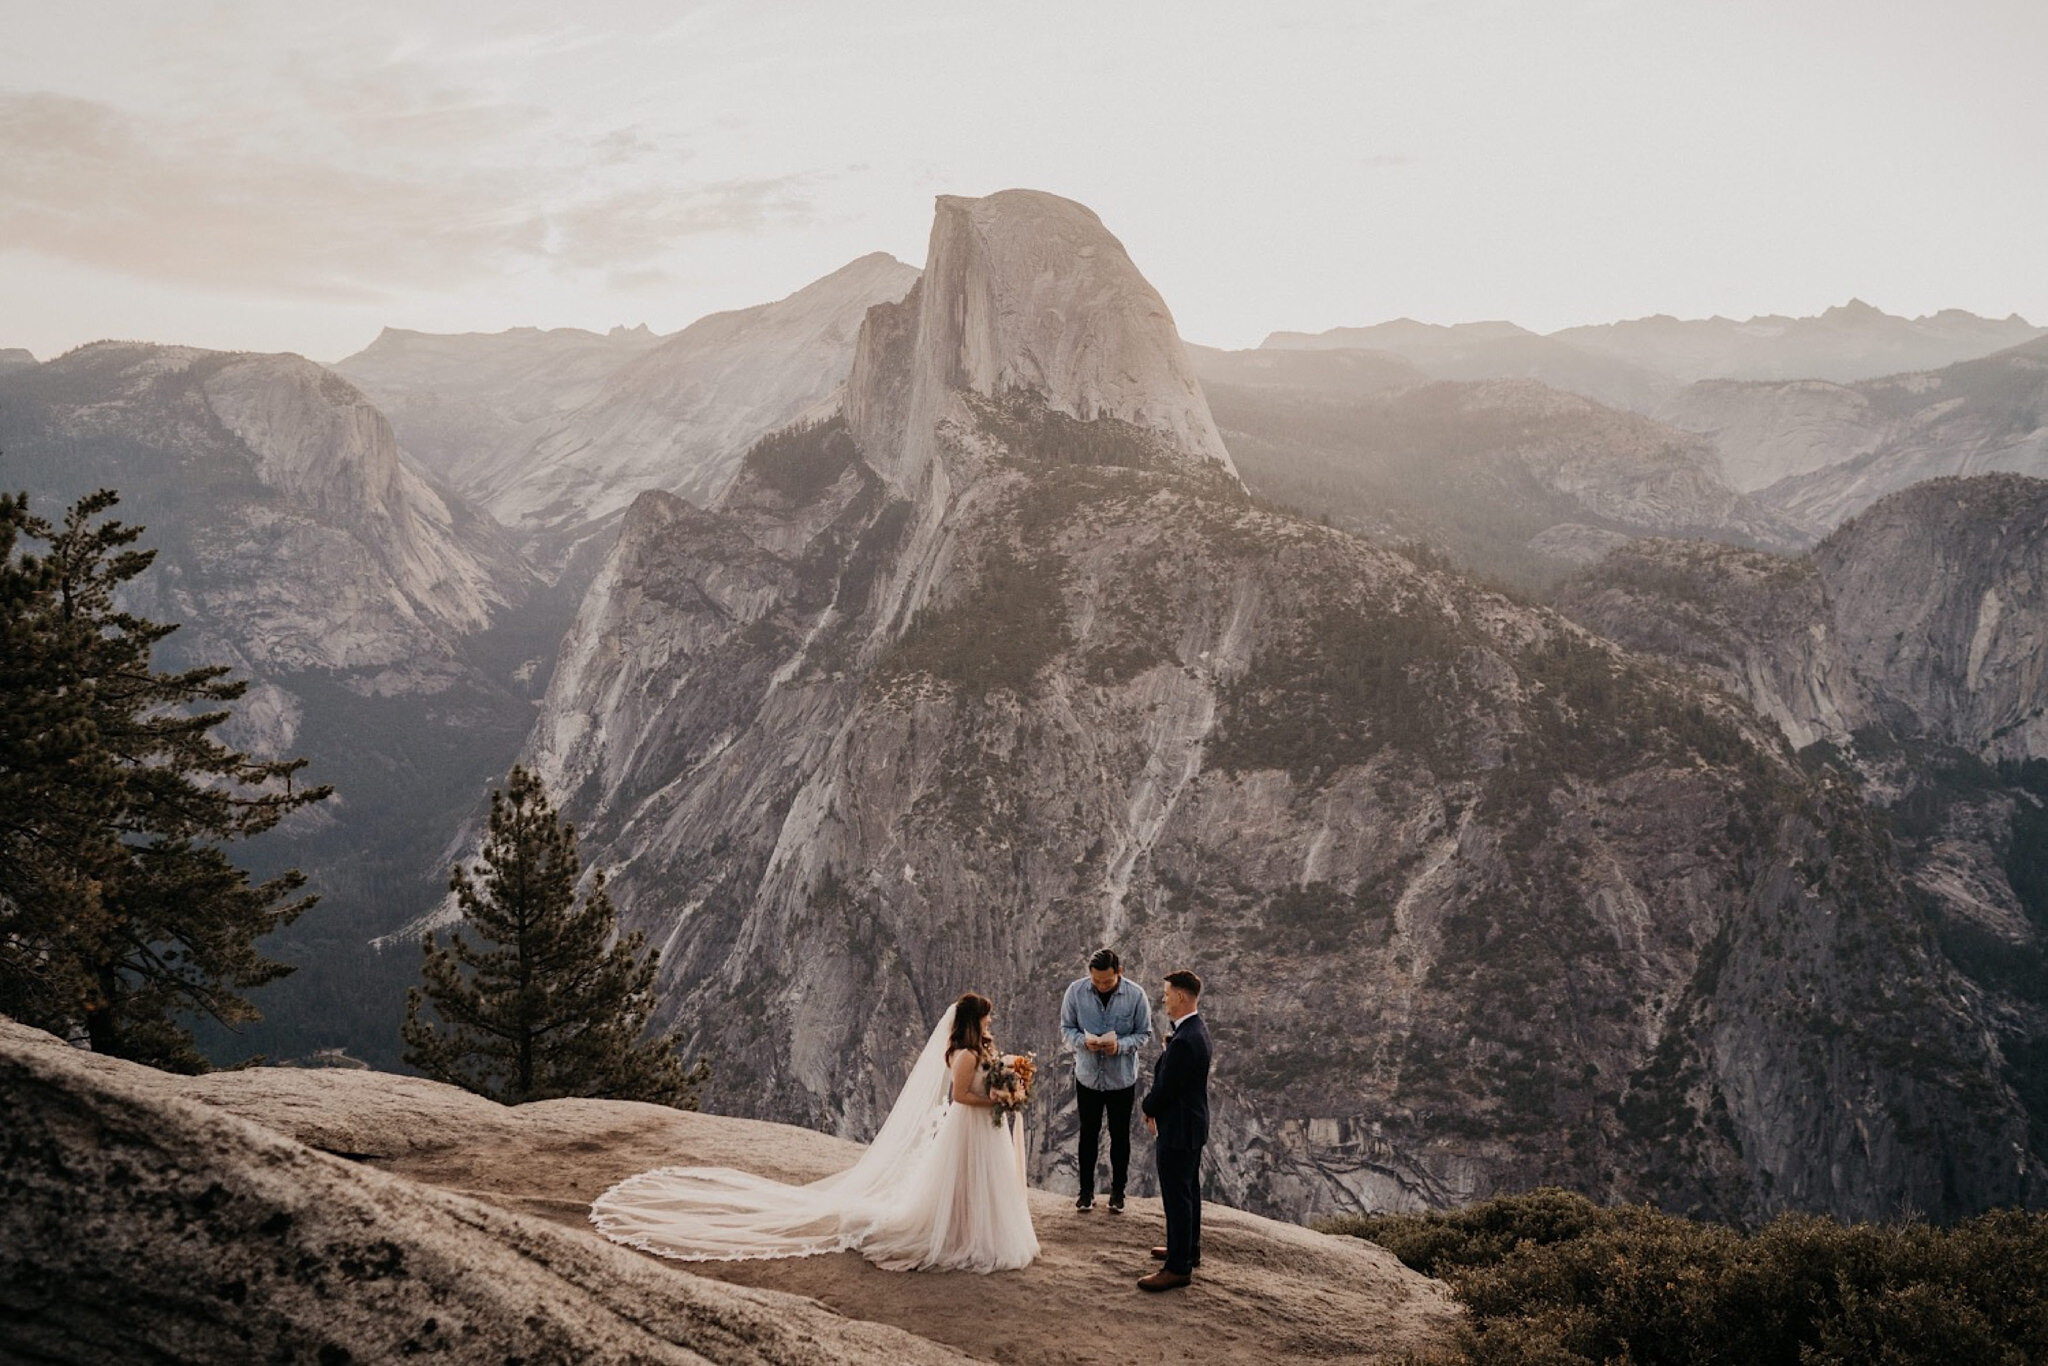 Bride and groom exchanged their vows in front of beautiful views of Half Dome in Yosemite National Park